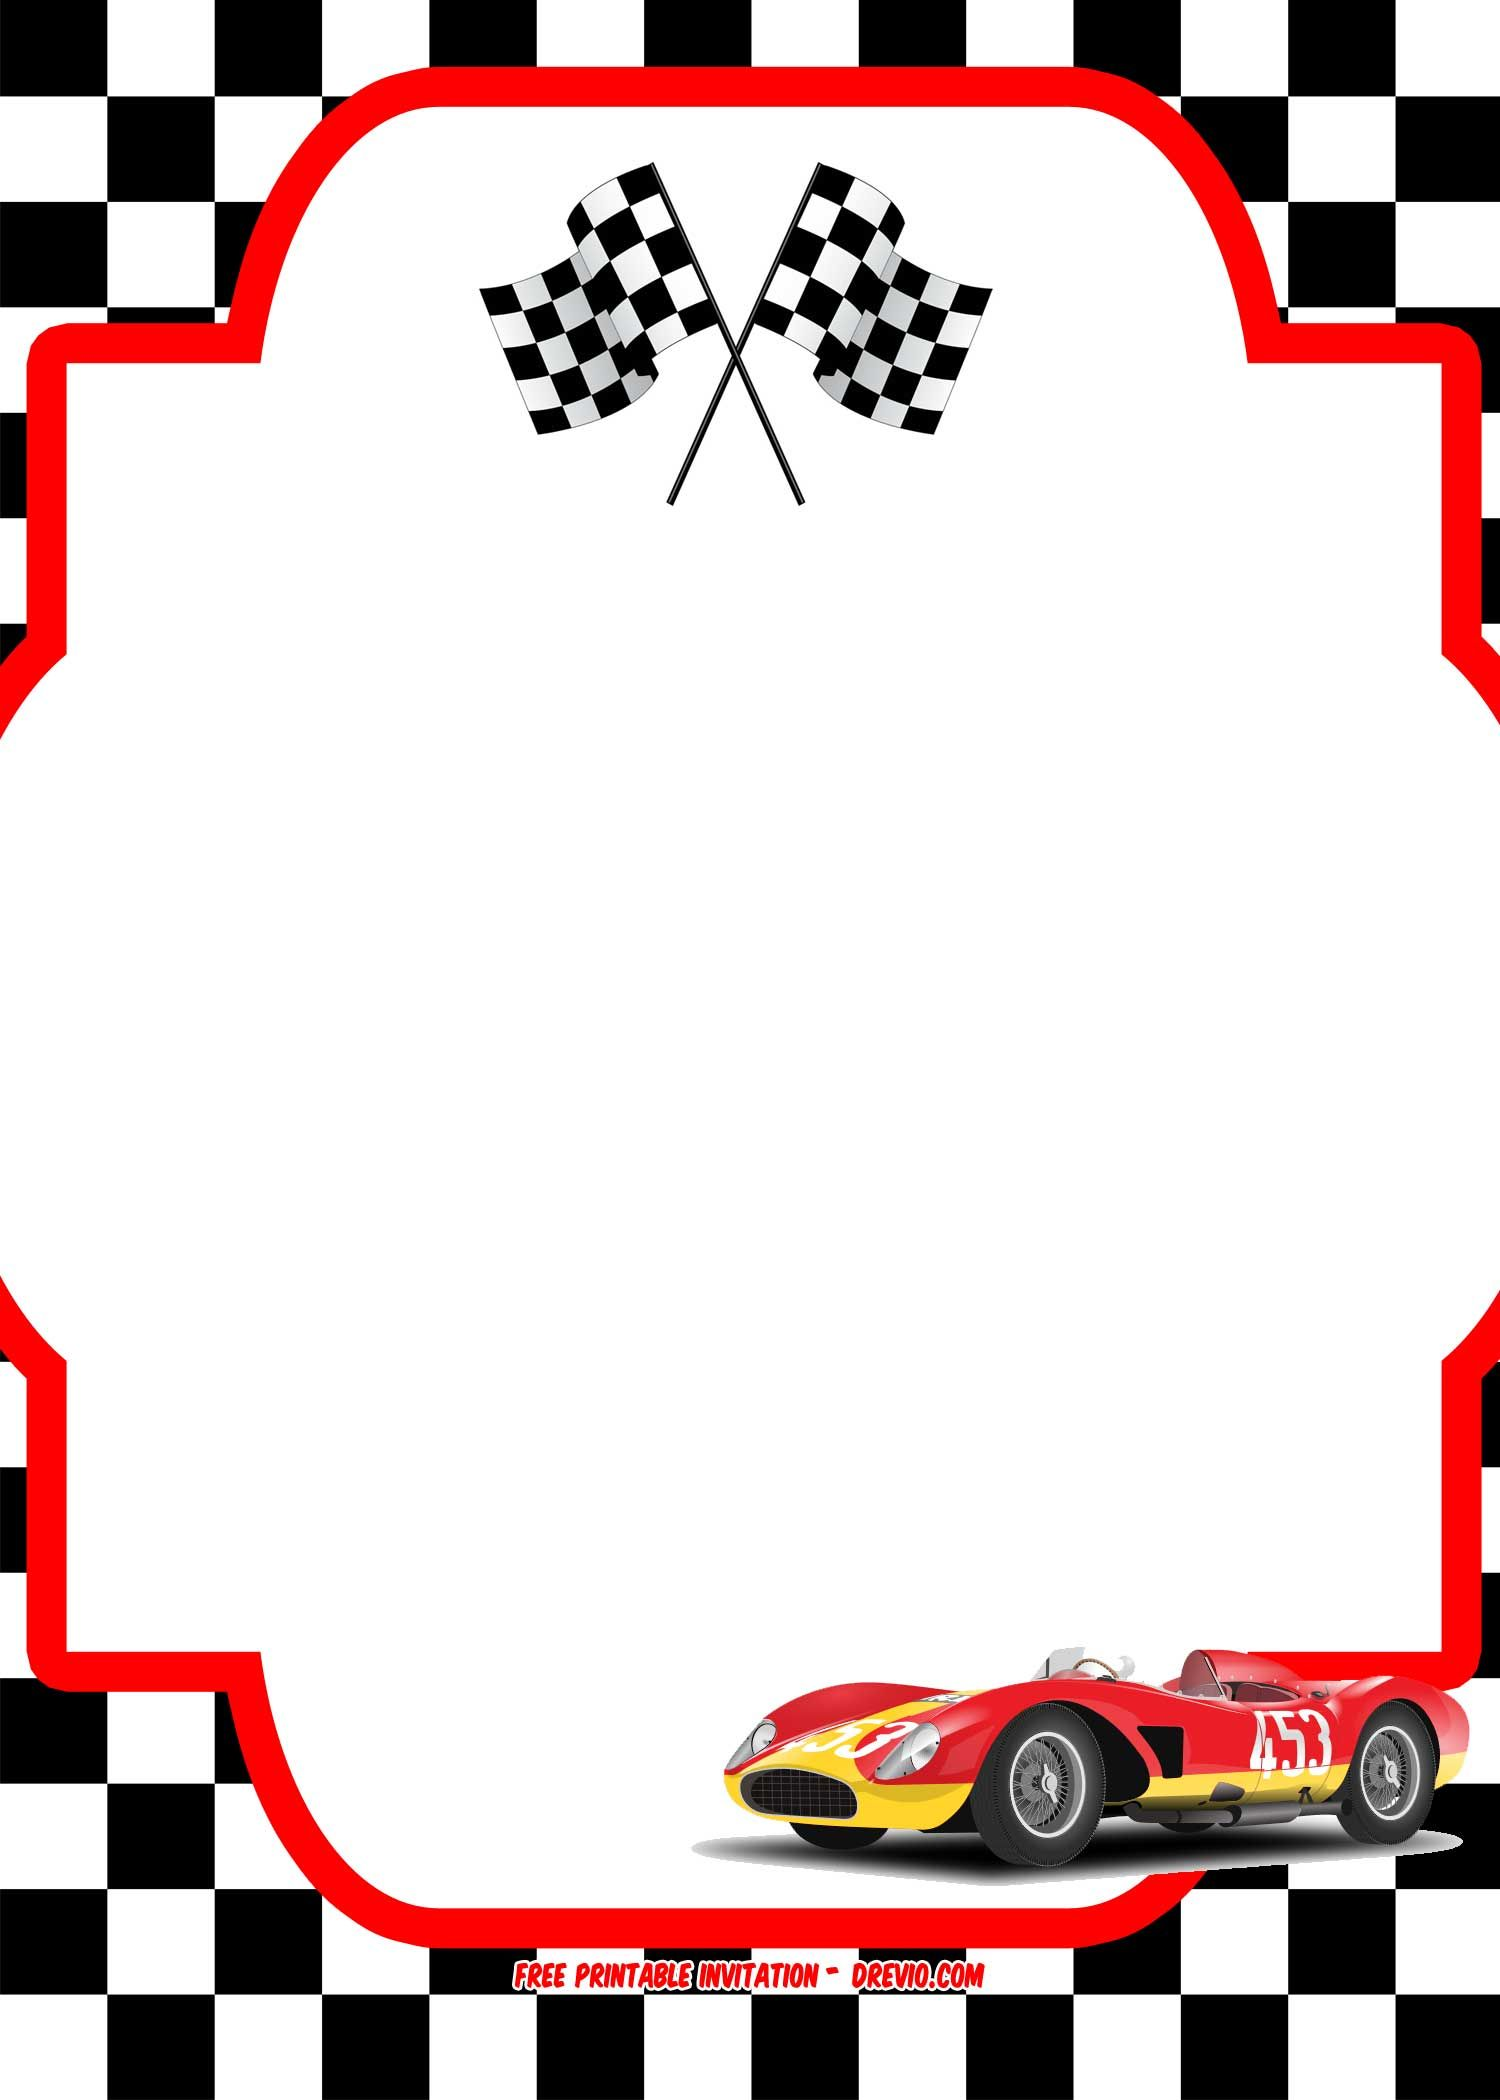 blank race car templates - free race car birthday invitation template printable